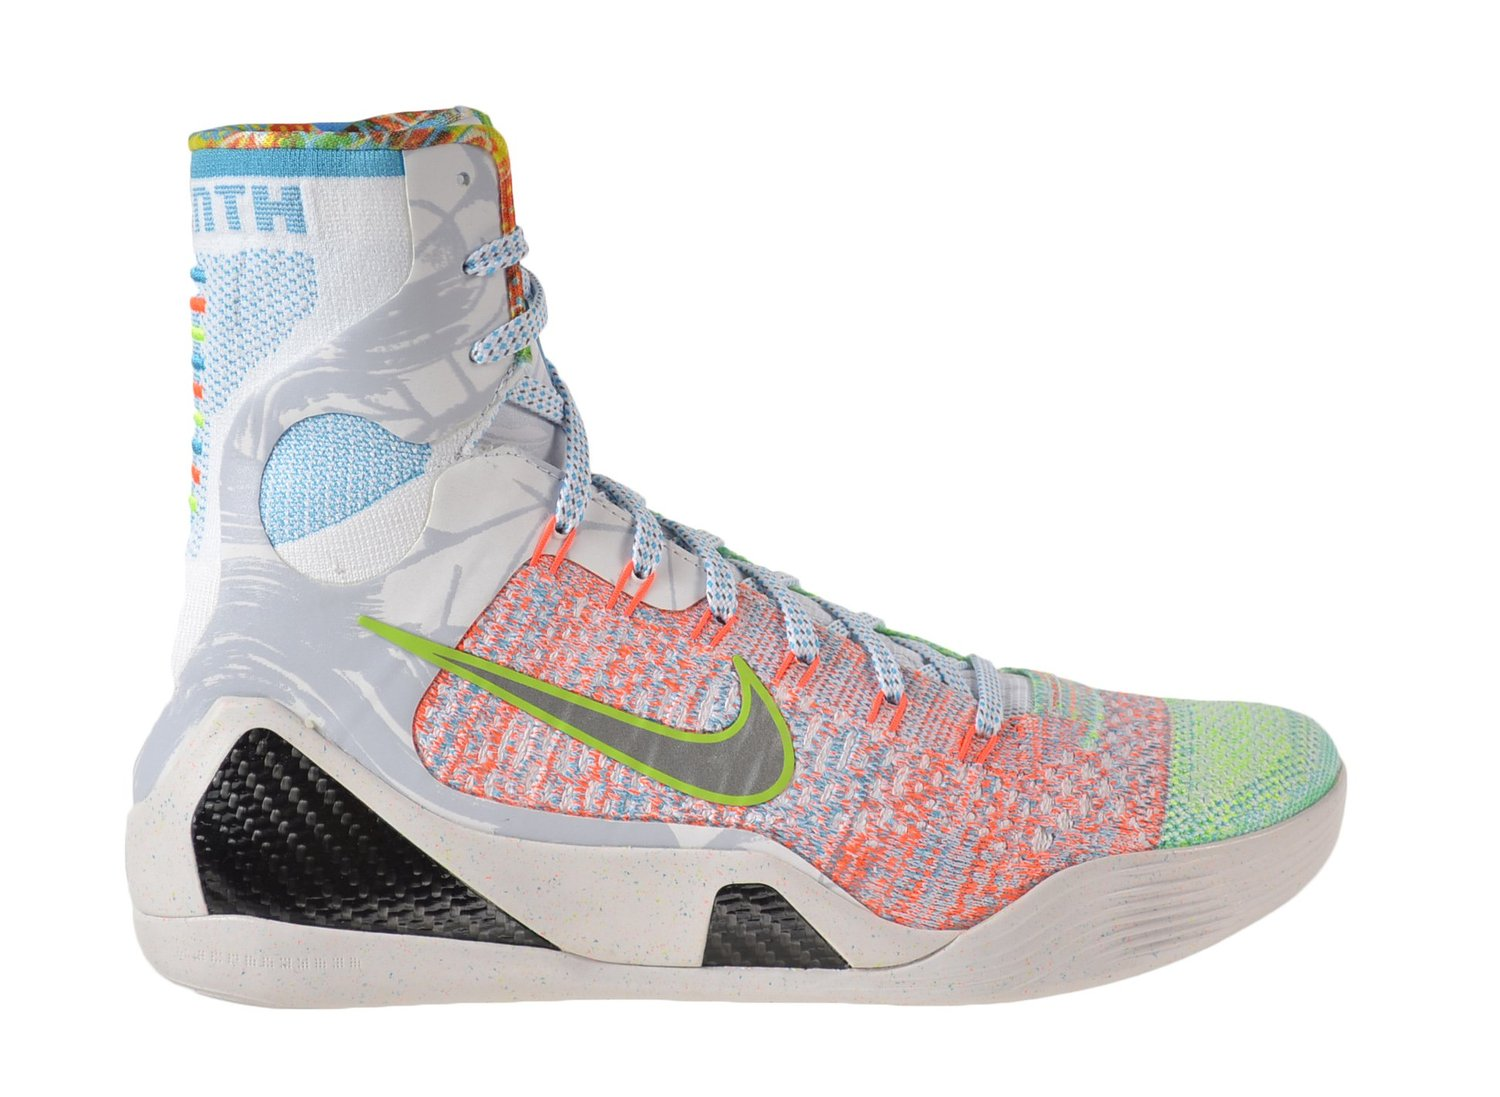 "Nike Kobe IX Elite Premium ""What The"" Mens' Shoes Multicolor/Reflect Silver-Chlorine Blue 678301-904"